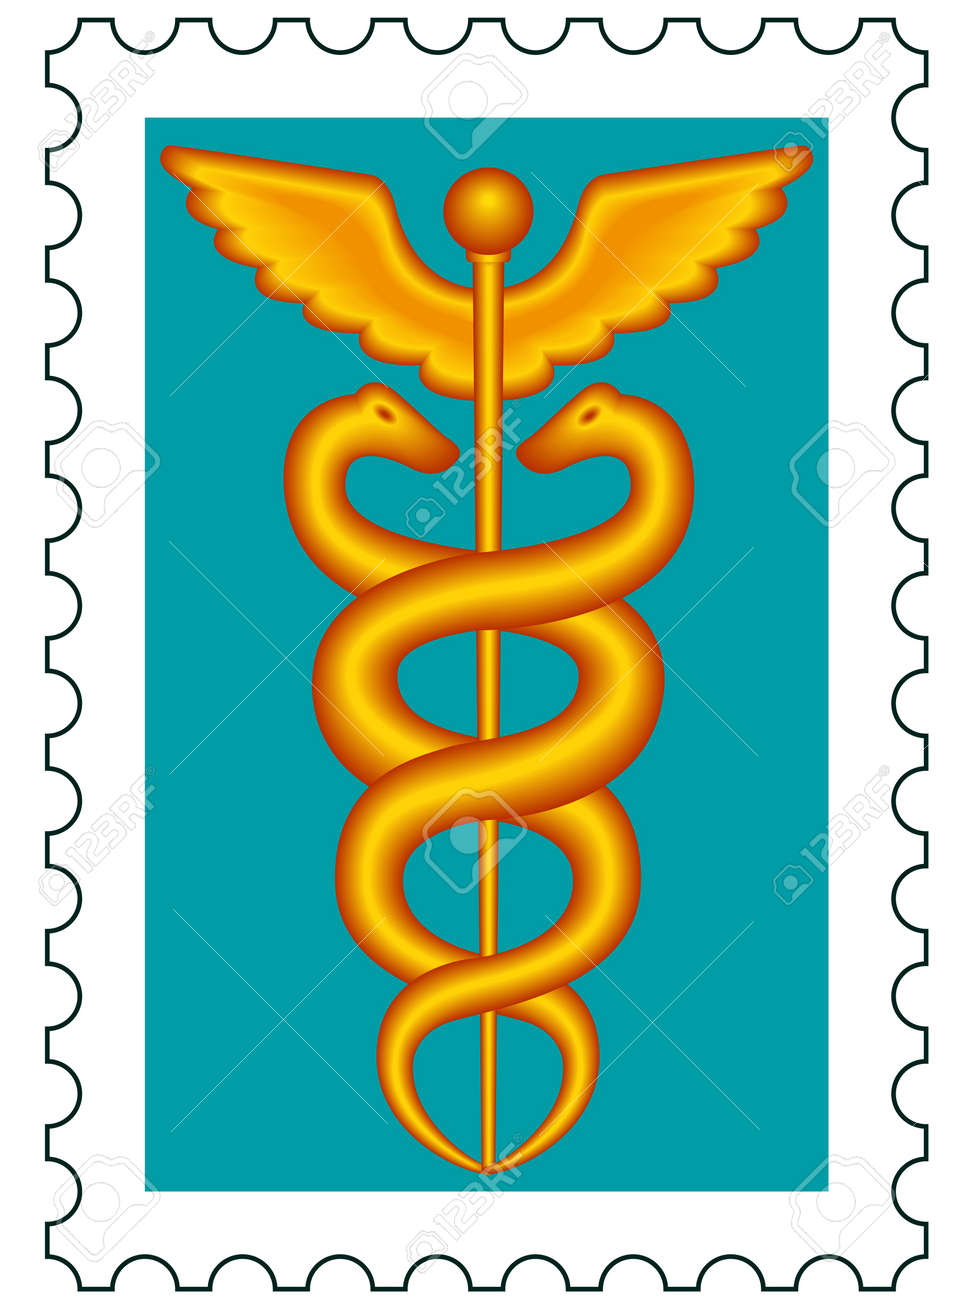 Medical symbol caduceus on postage stamp Stock Vector - 12659118